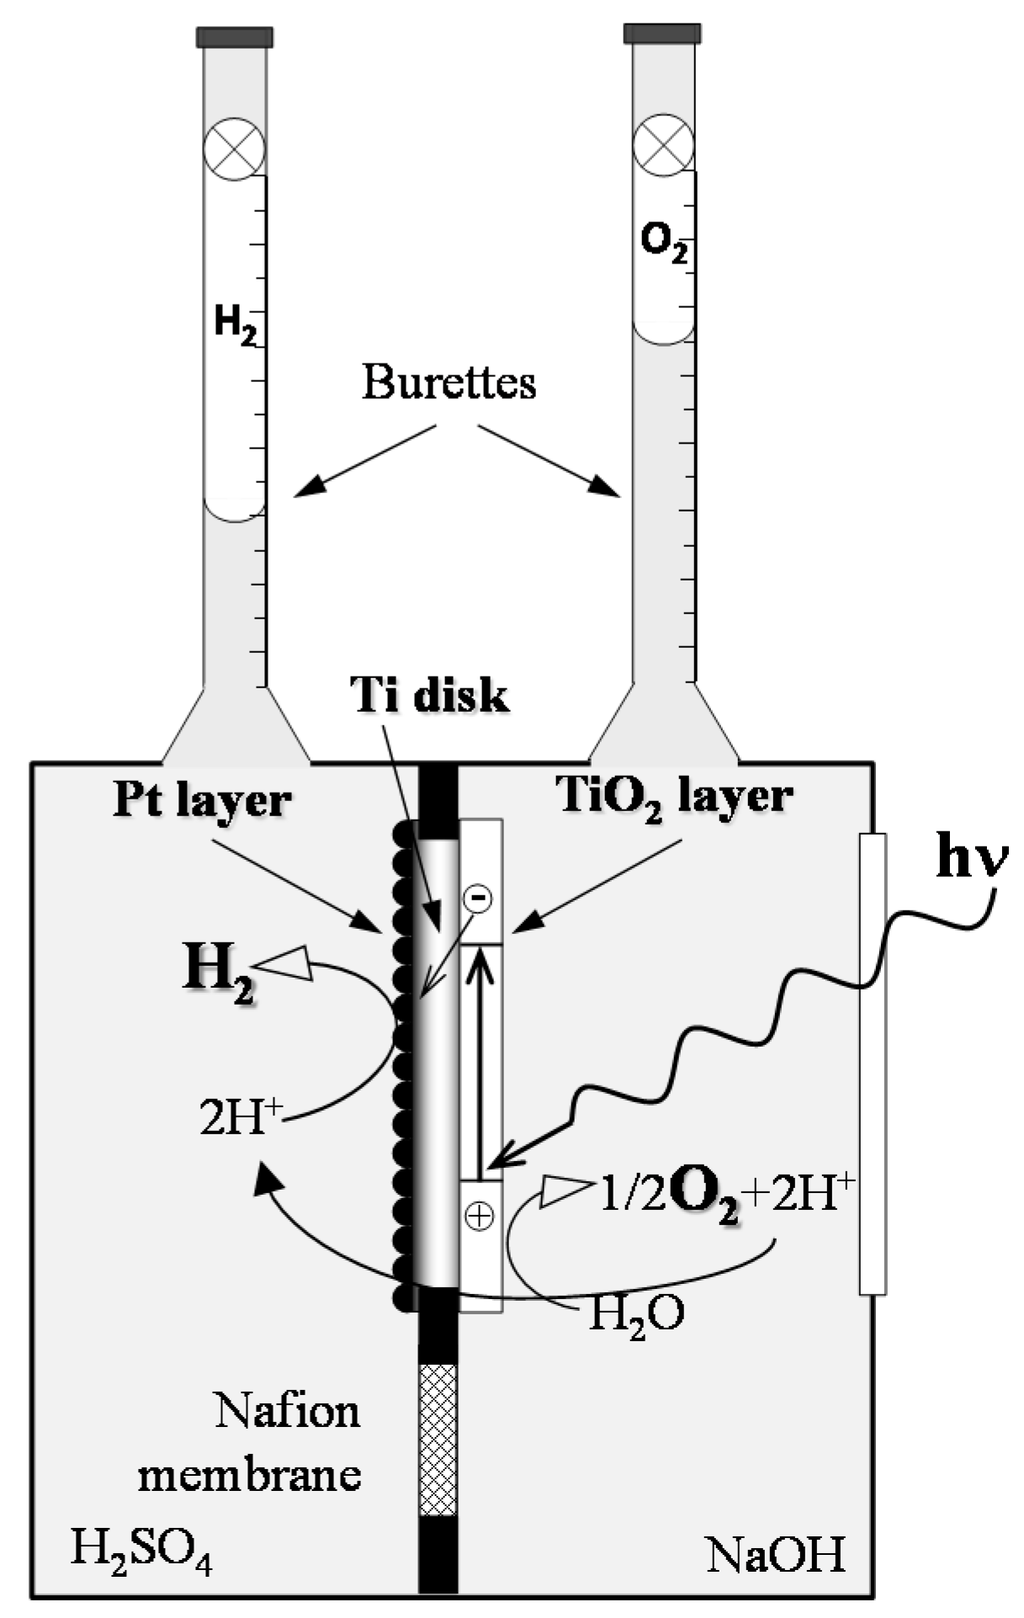 materials   free full-text   fabrication of pt/ti/tio2 ... hydrogen diagram for pt #12